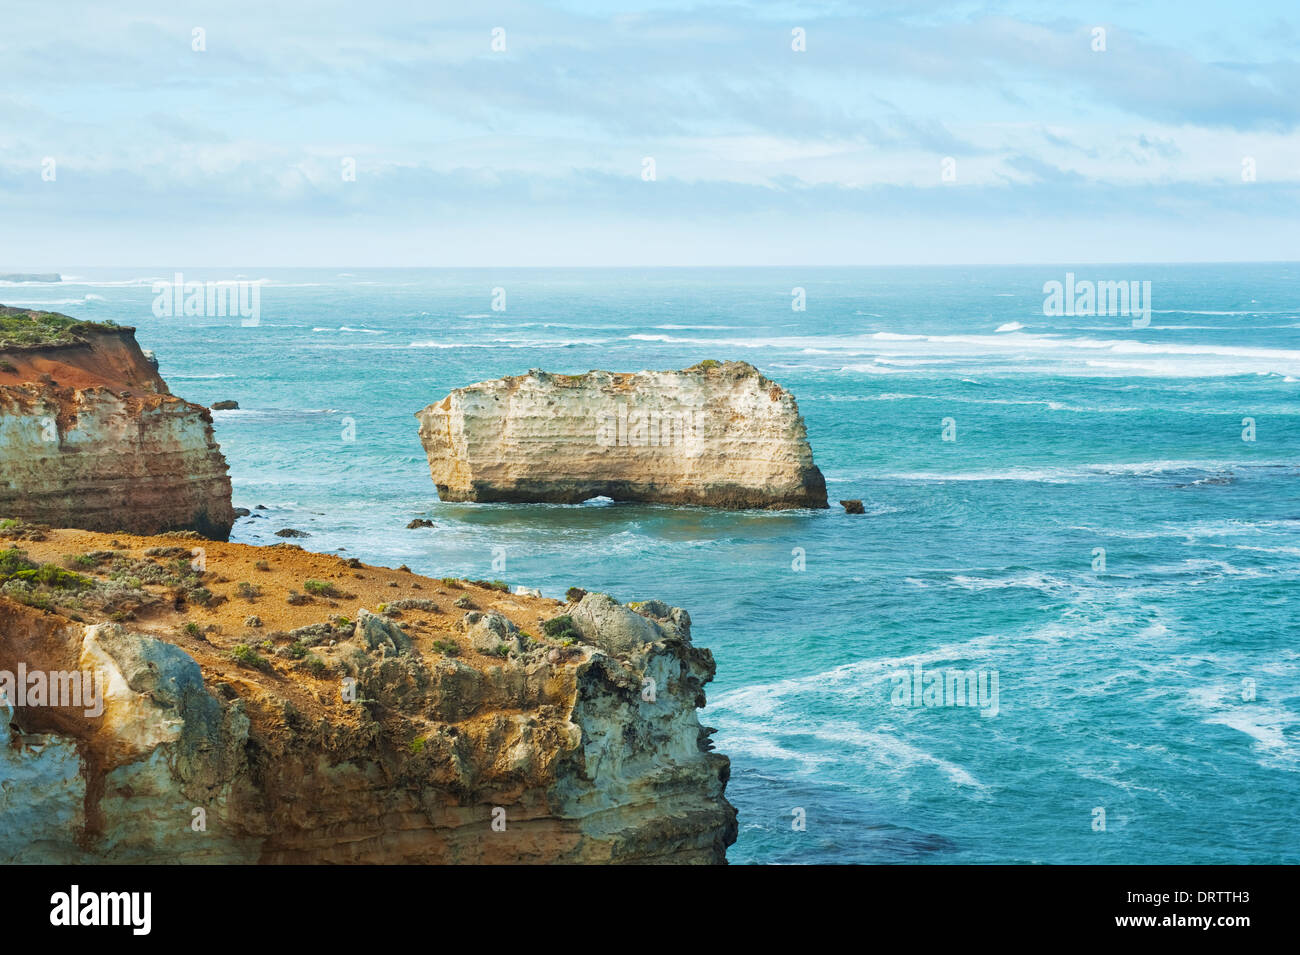 One of the famous rocks in the Bay of Islands Coastal Park,Great Ocean Road, Australia - Stock Image